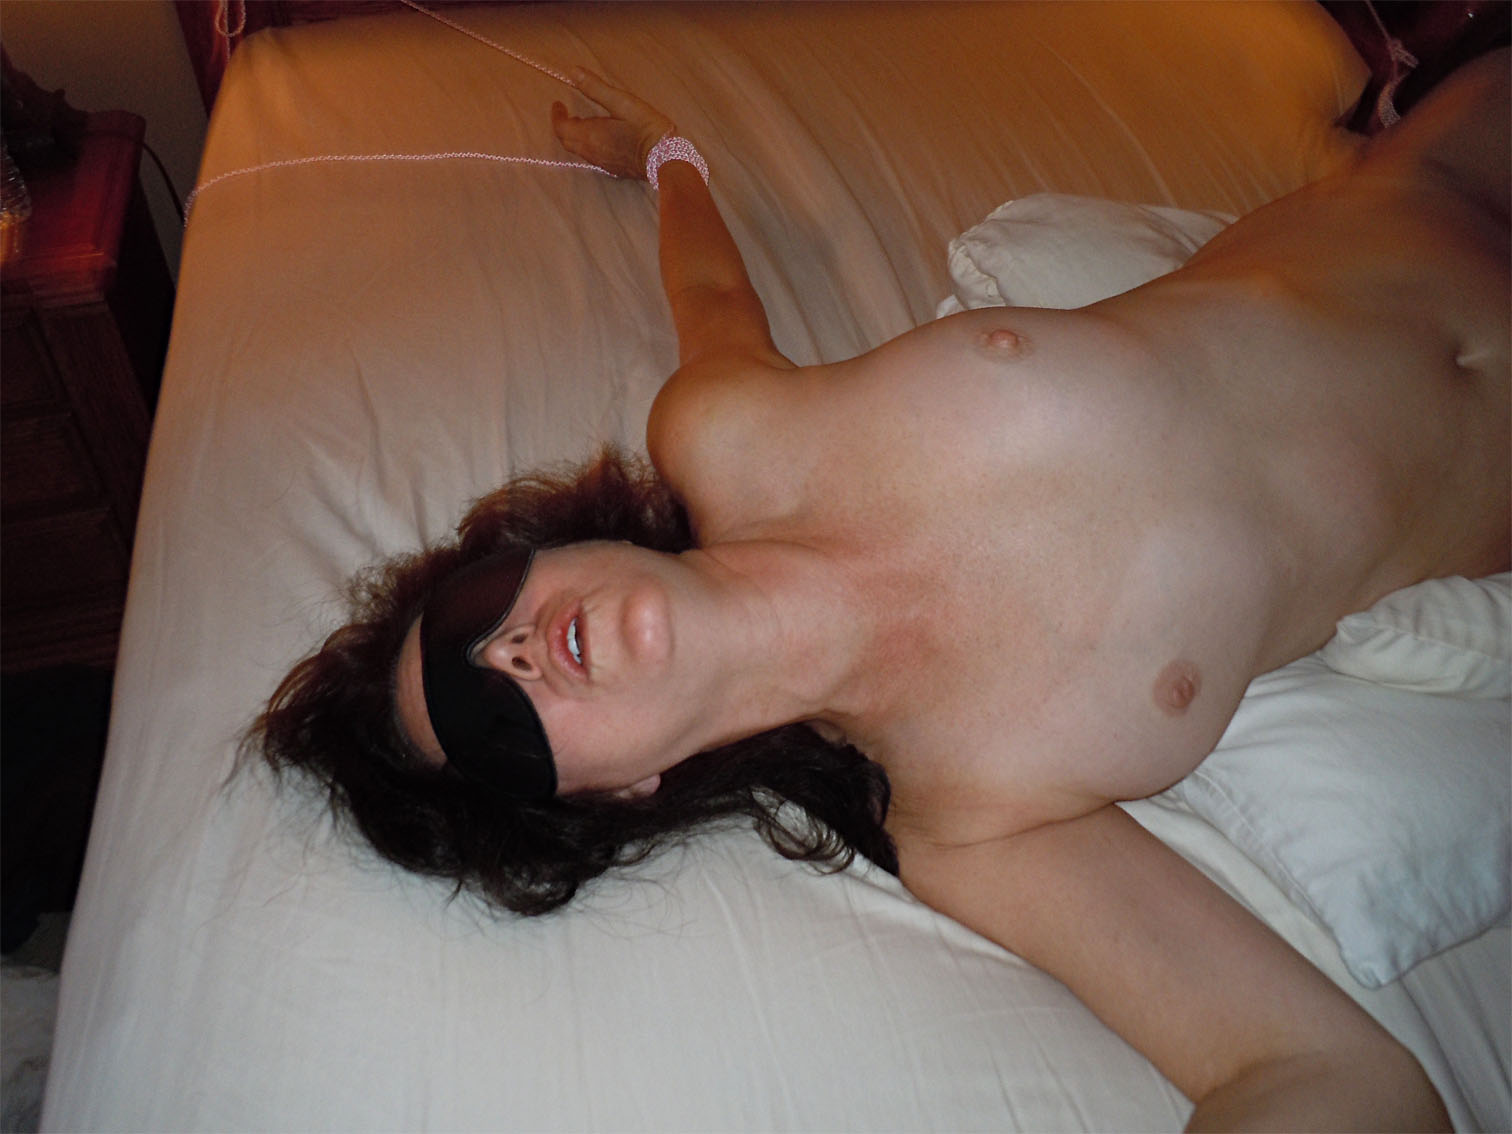 Mature wife blindfolded and used for sex in hotel room pictures.: www.mature-amateur-sex.com/4715/mature-wife-blindfolded-and-used...